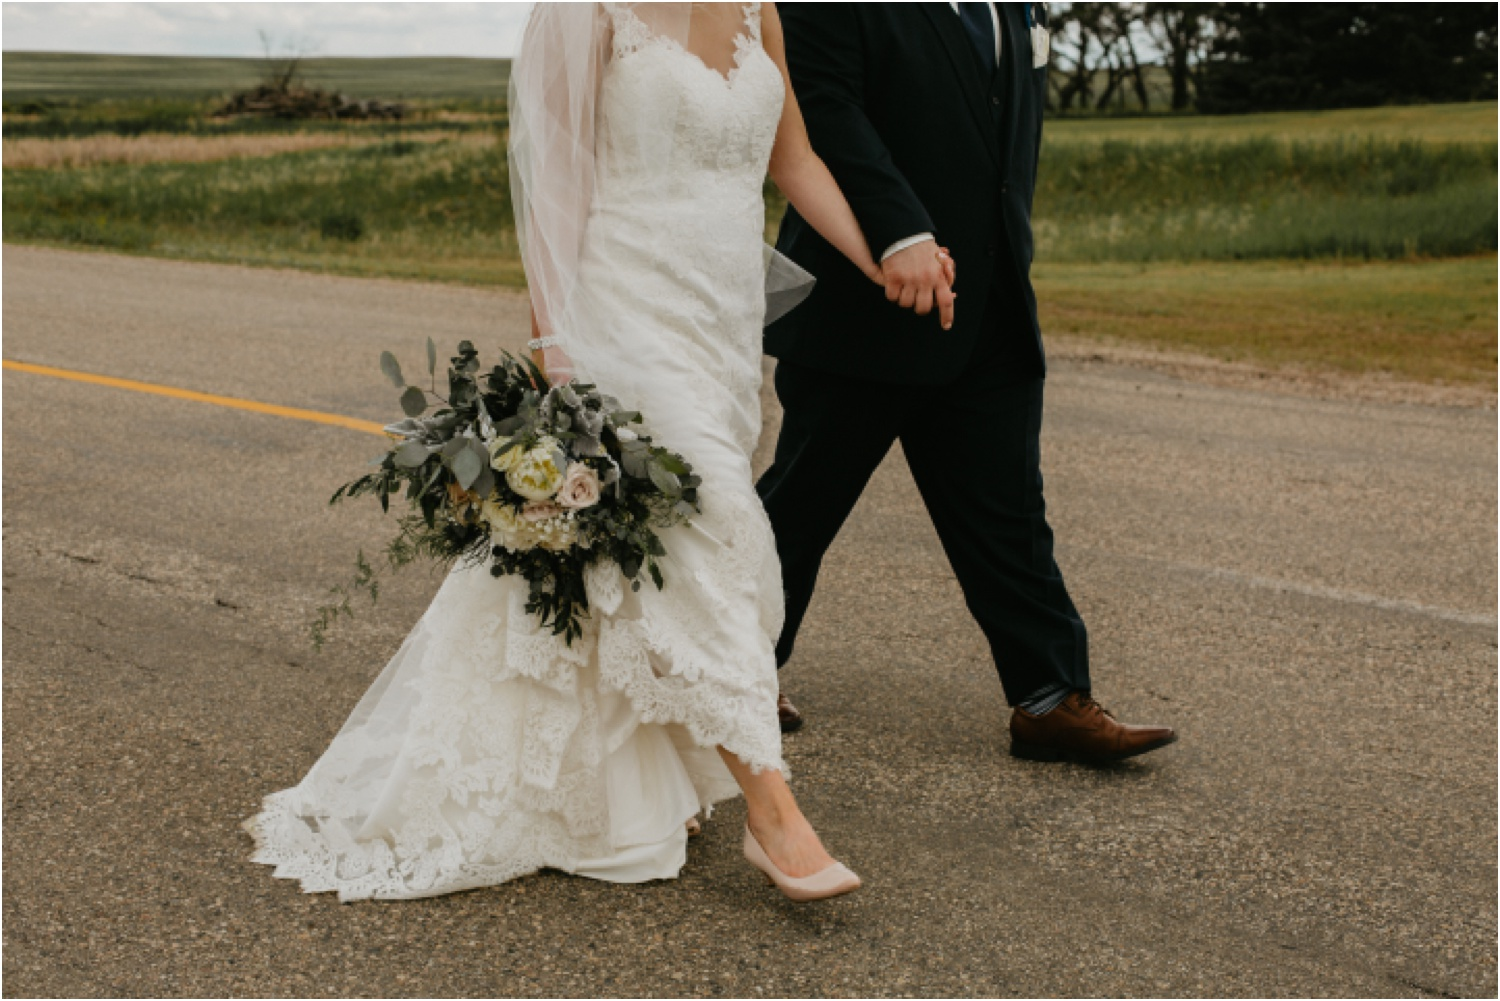 Kailey_Carter_Saskatchewan_Wedding (356 of 727).jpg